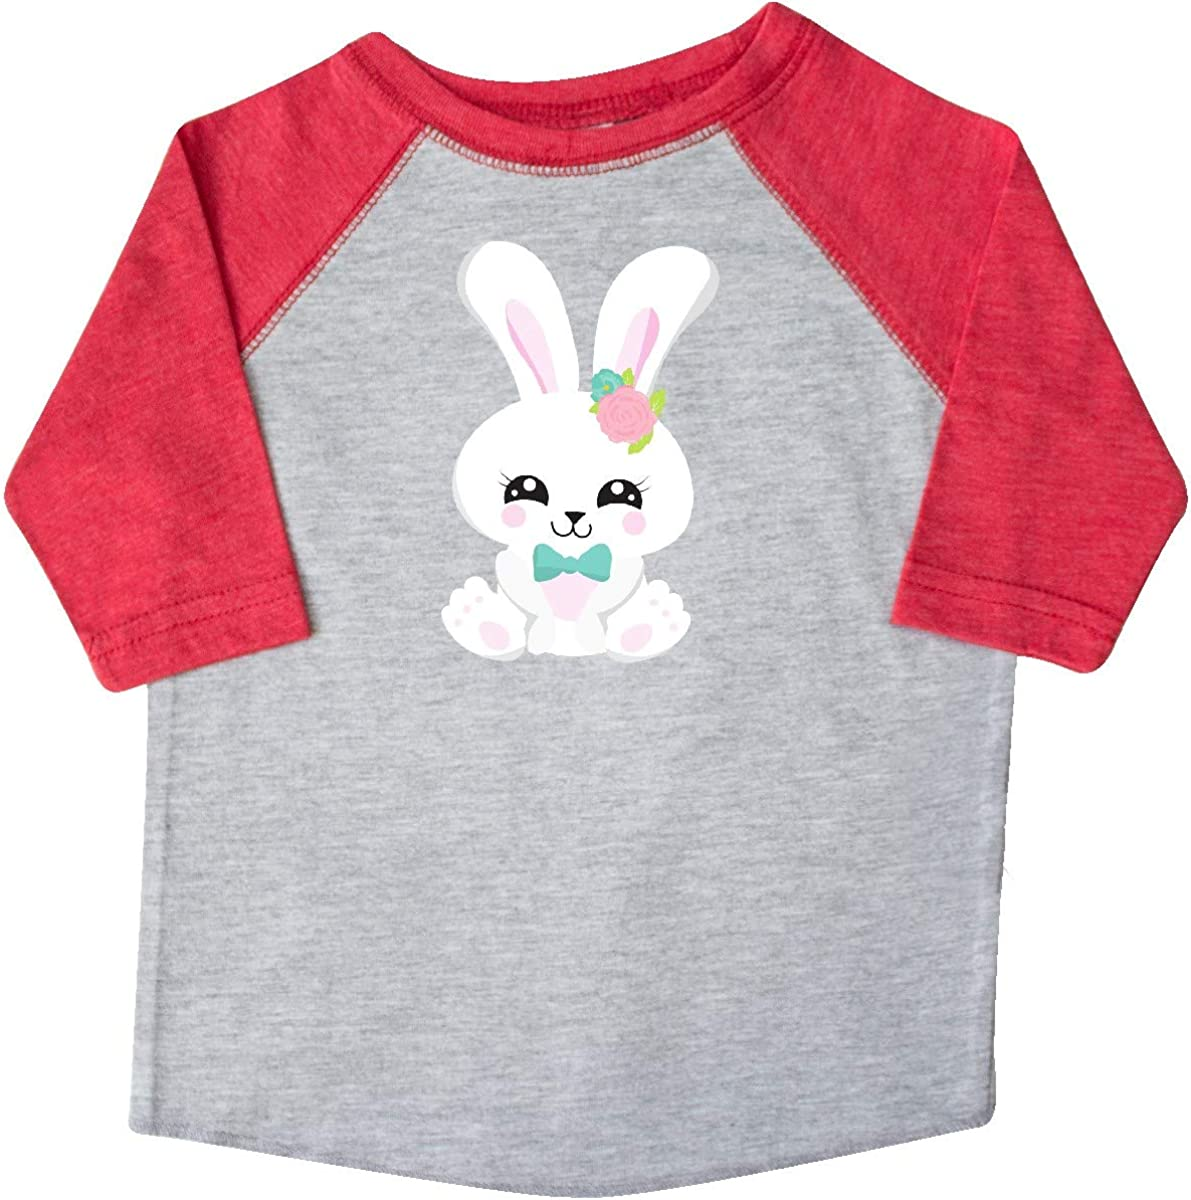 inktastic Cute Bunny White Bunny Bunny with Blue Bow Tie Toddler T-Shirt